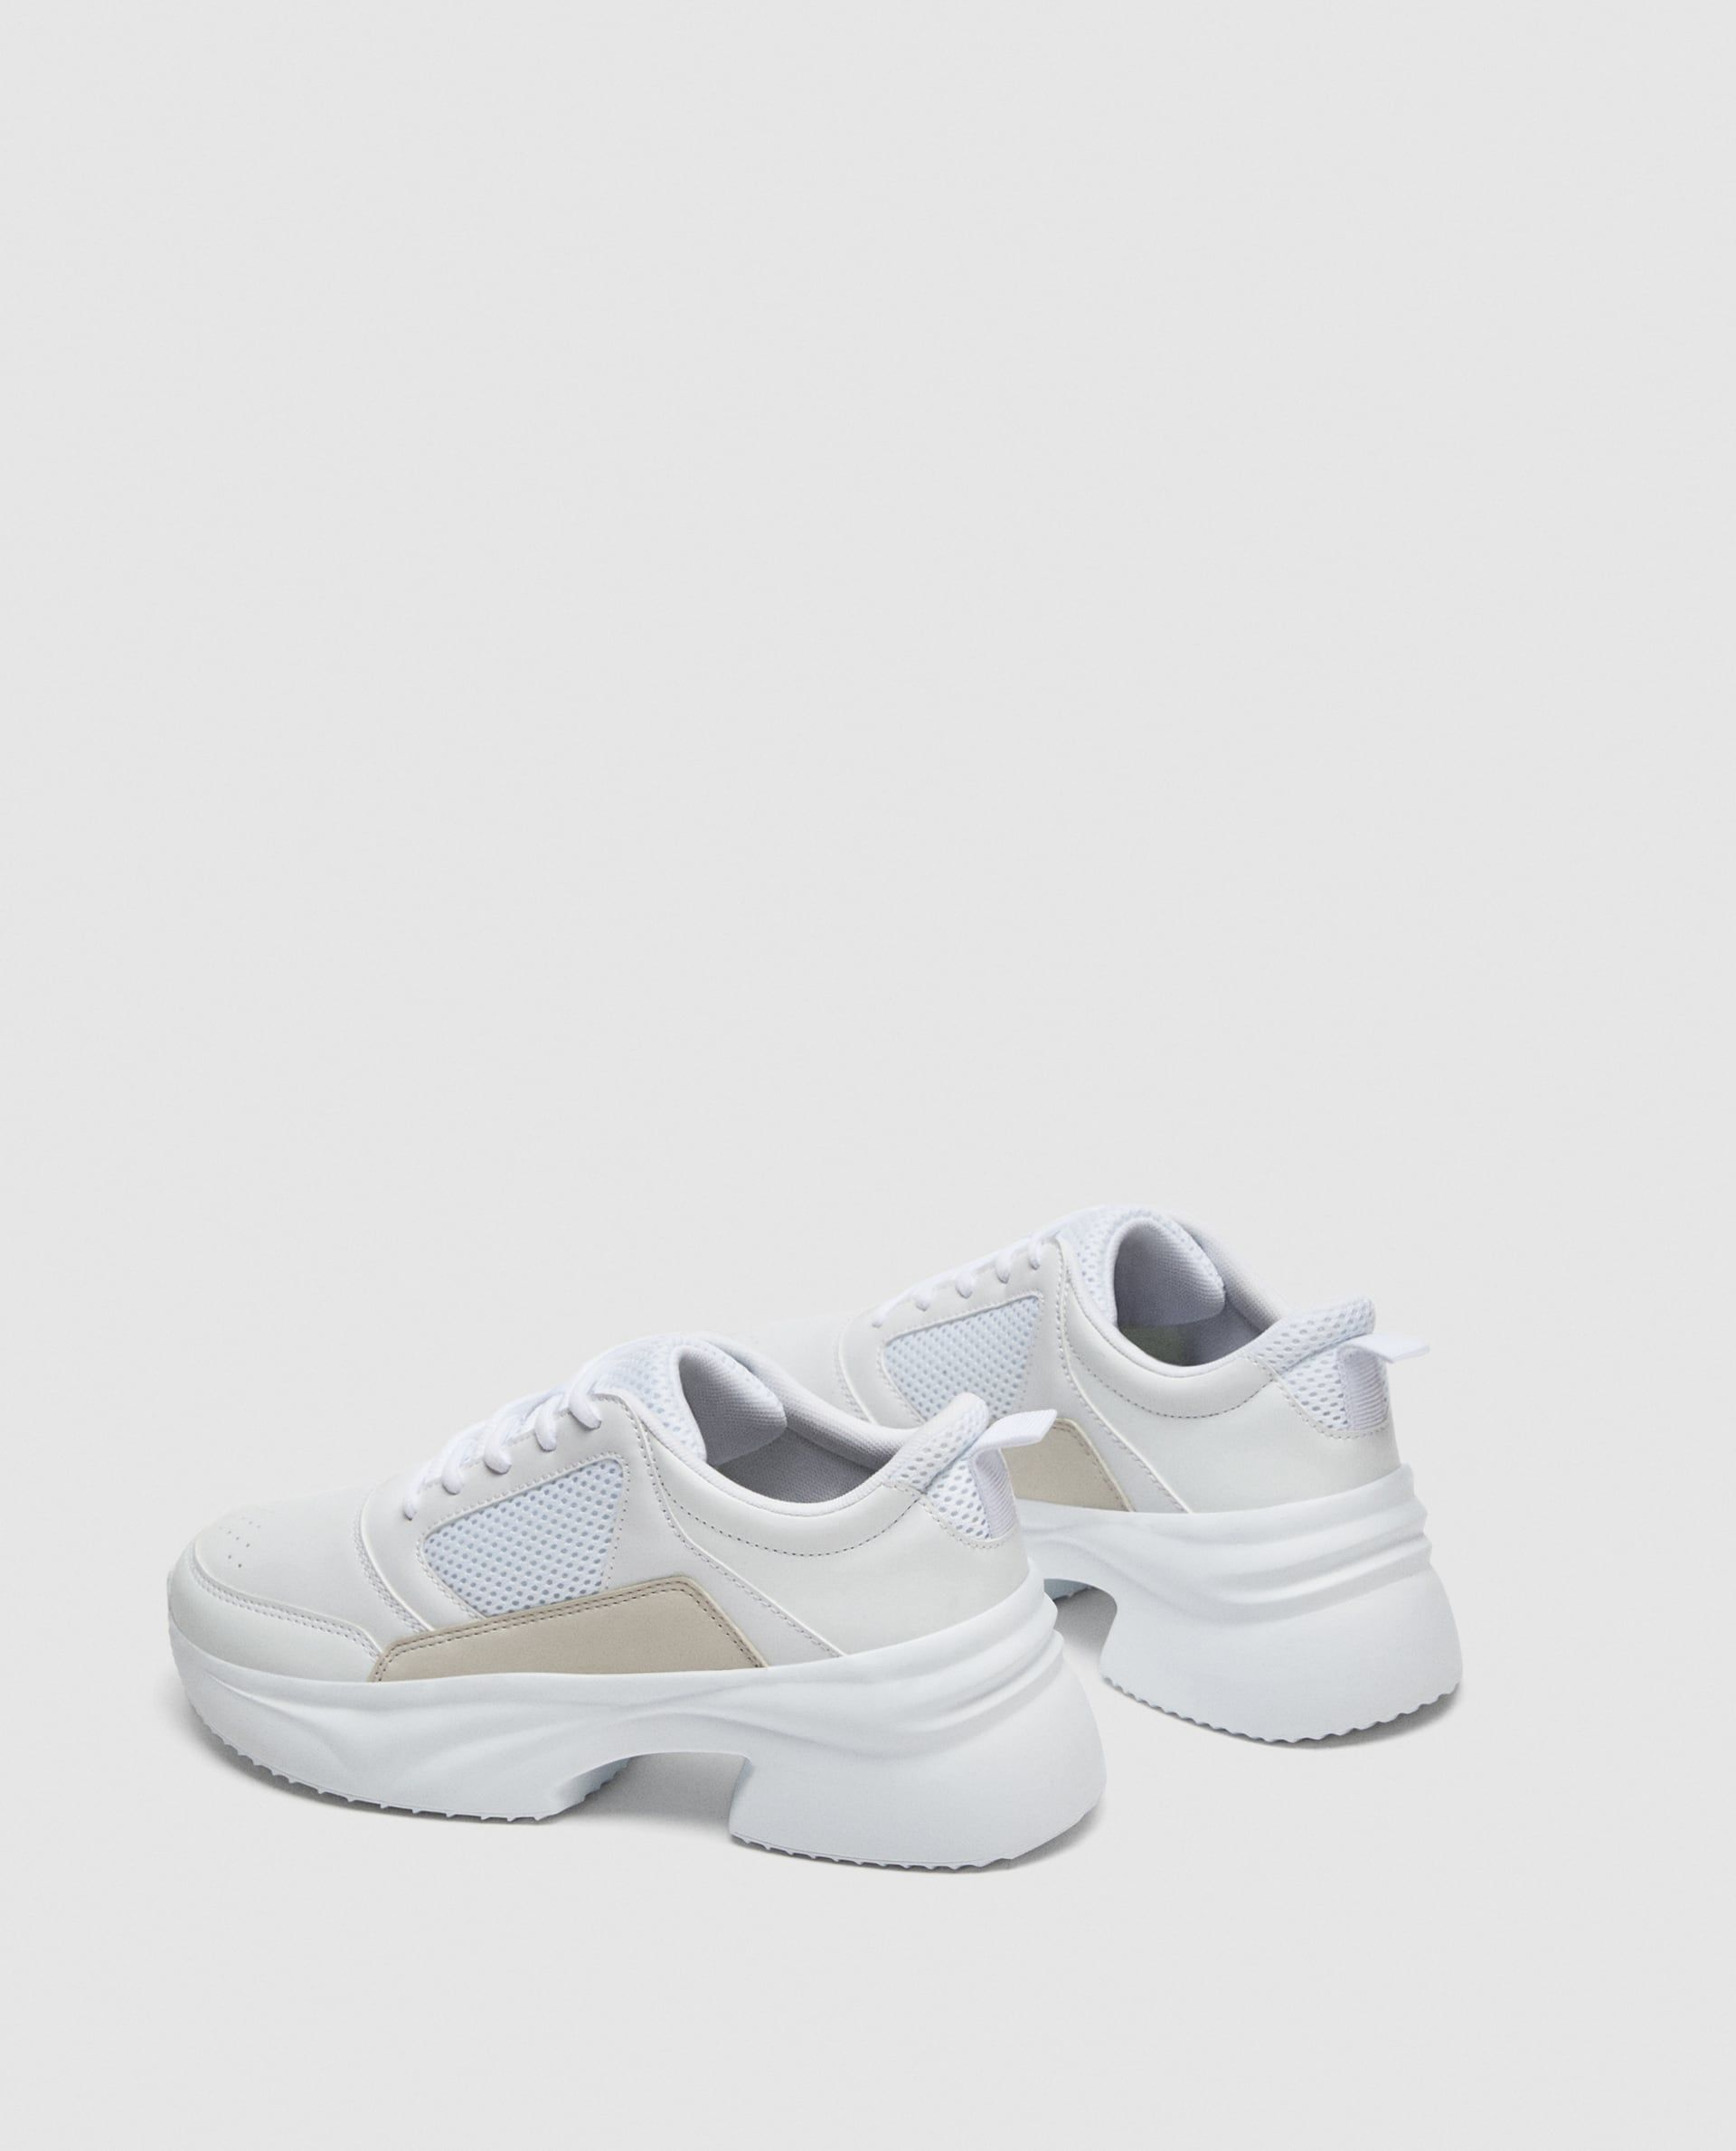 0a6dca71cec Thick soled sneakers | Clothes | Zara sneakers, Sneakers, Vans sneakers